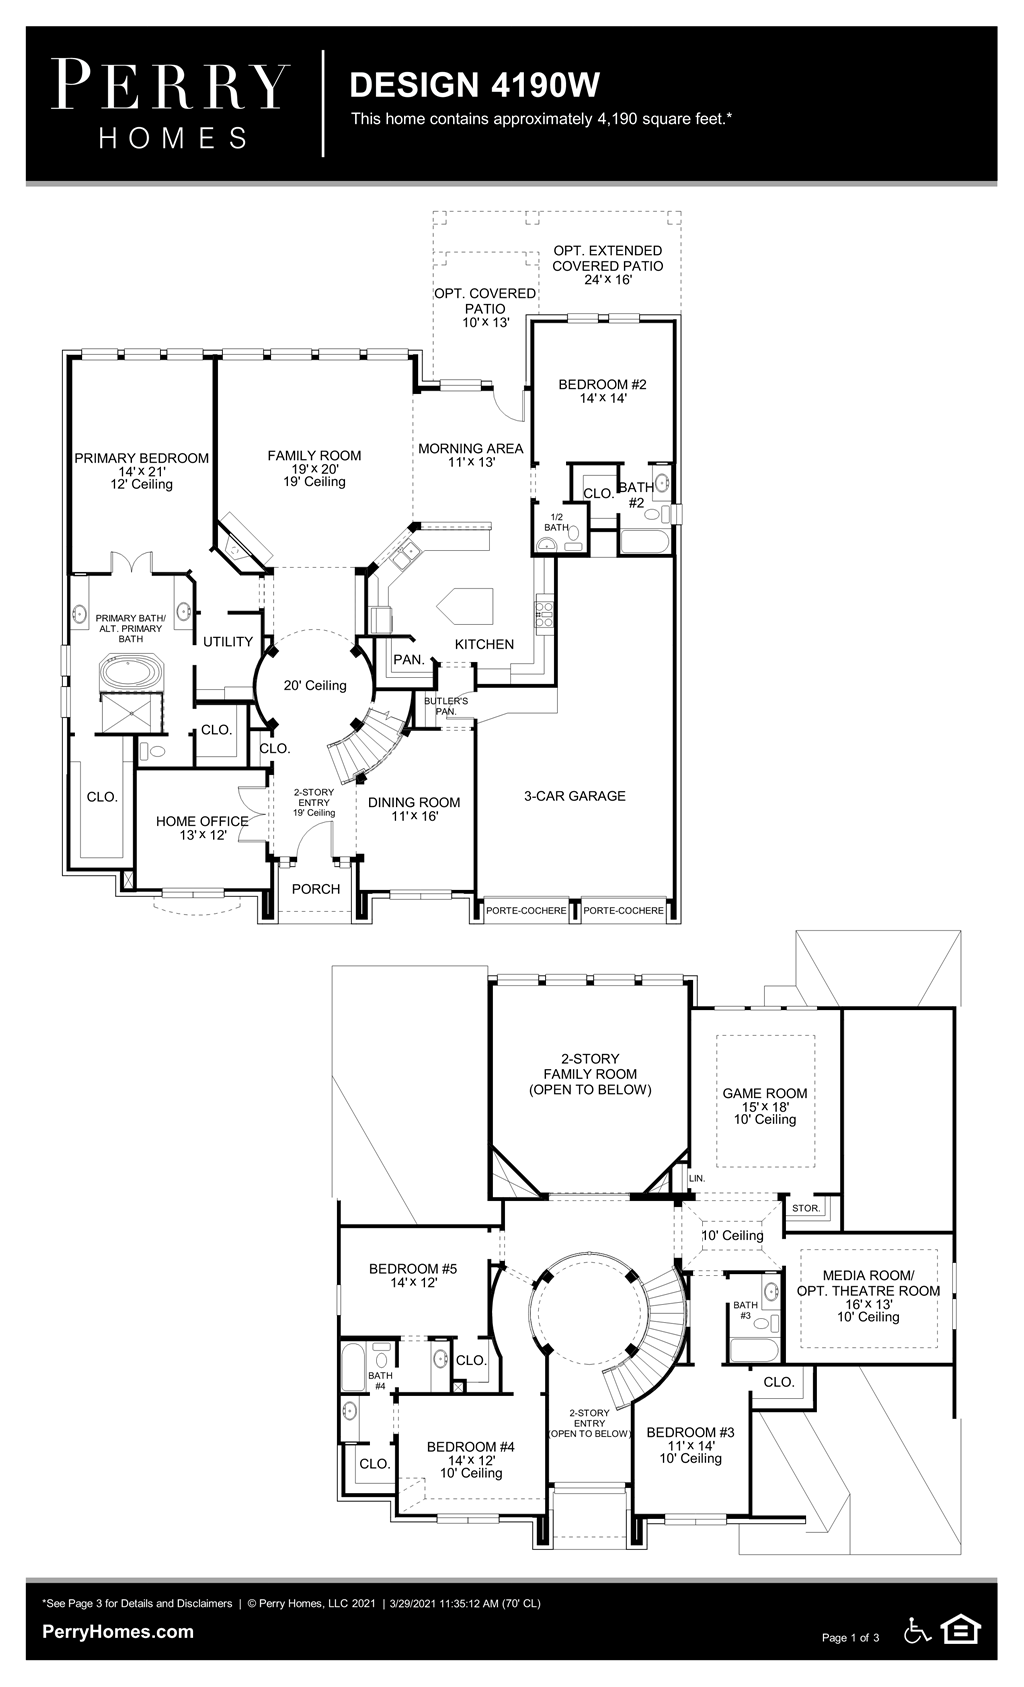 Floor Plan for 4190W